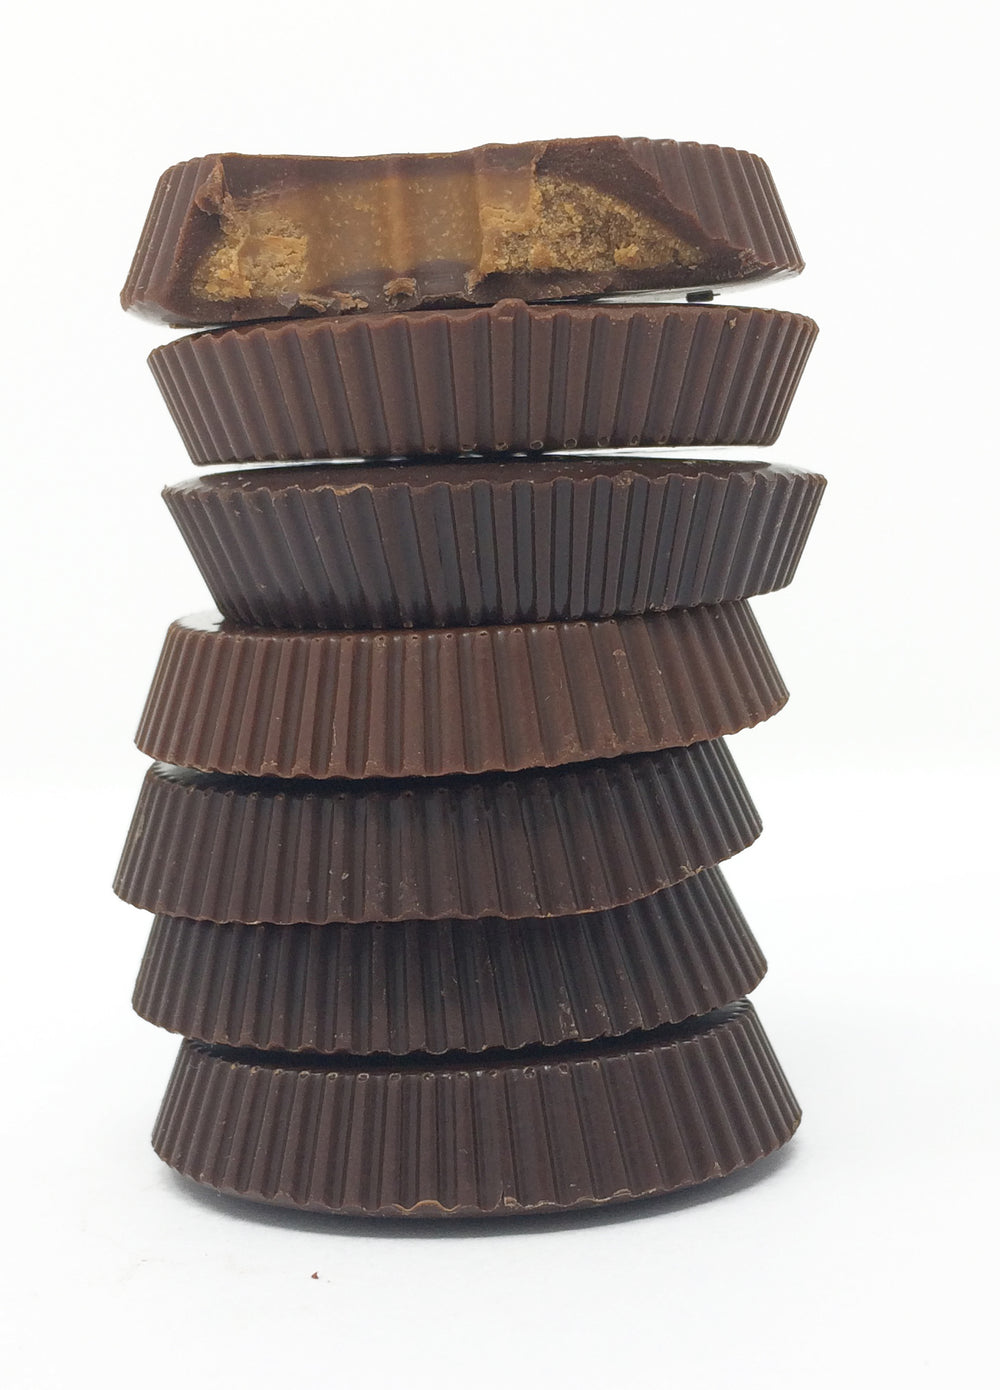 70% Dark Chocolate KETO 0g Total Sugar Peanut Butter Cups